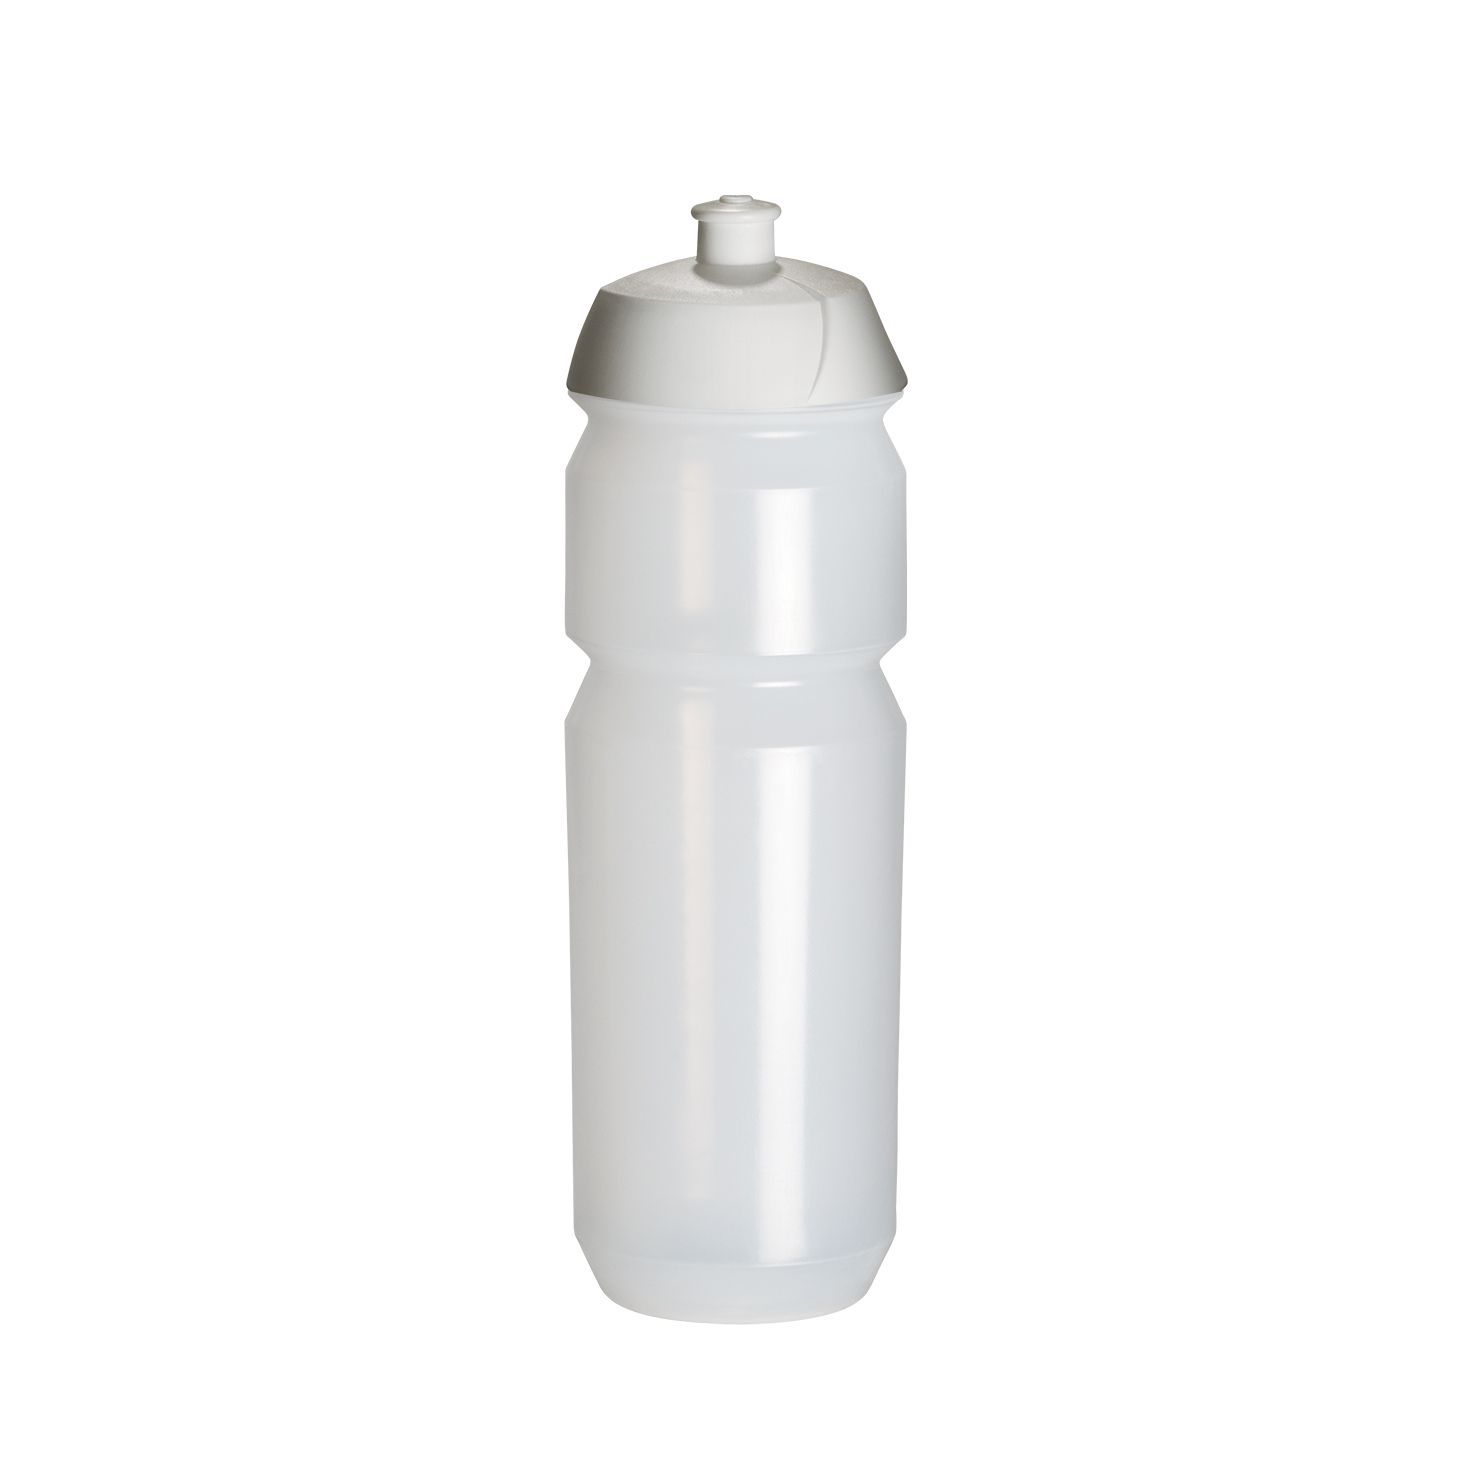 Transparante Tacx bio bottle | 750 ml